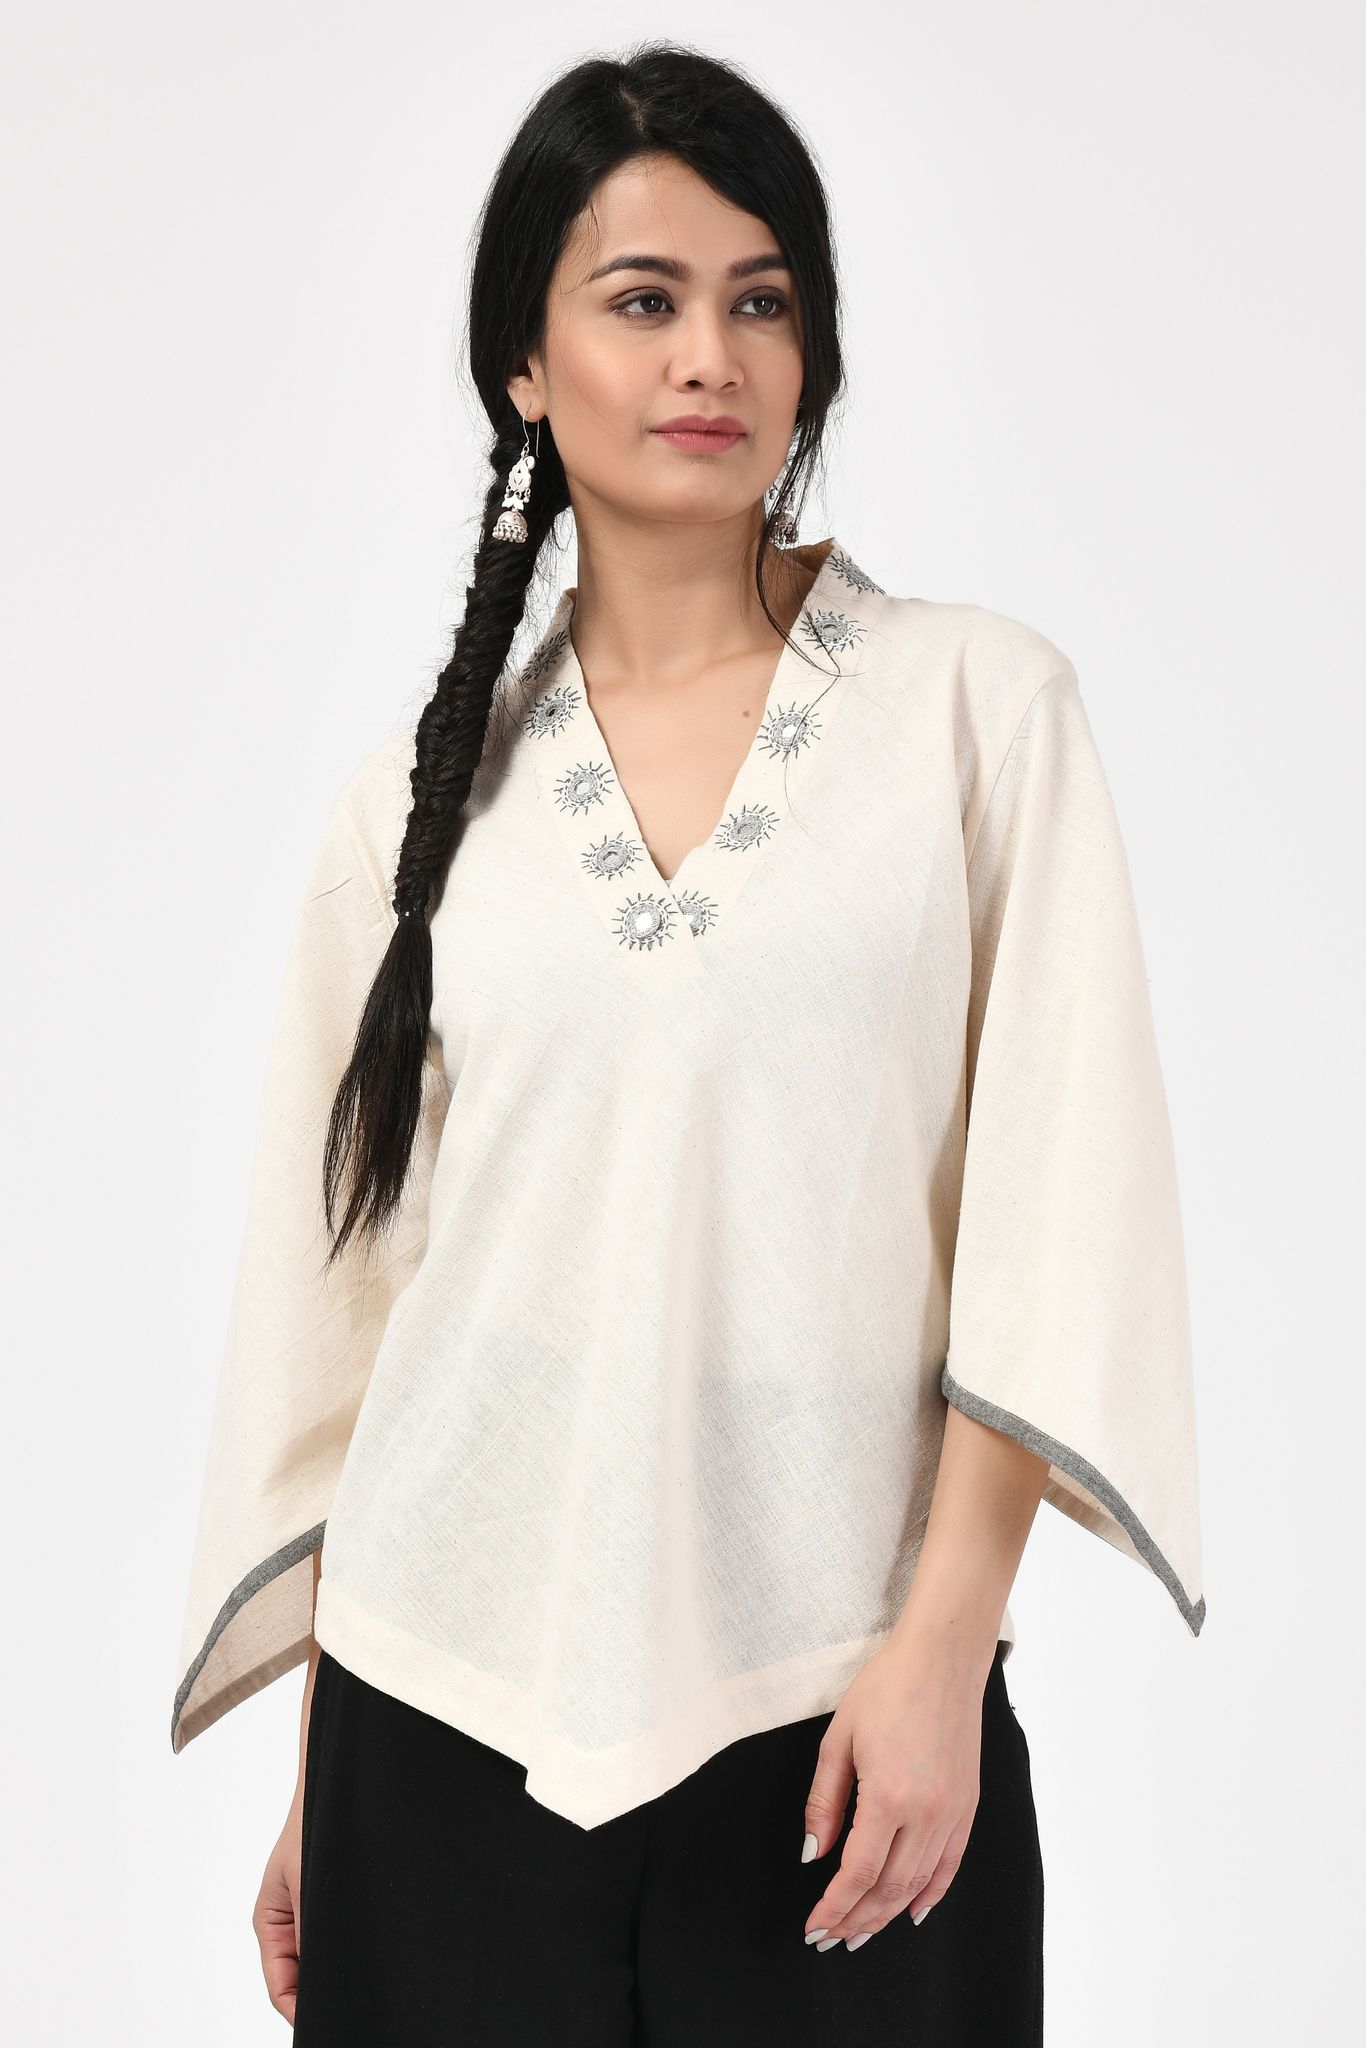 Kora Mirror Work Neck Embroidery Natural Top